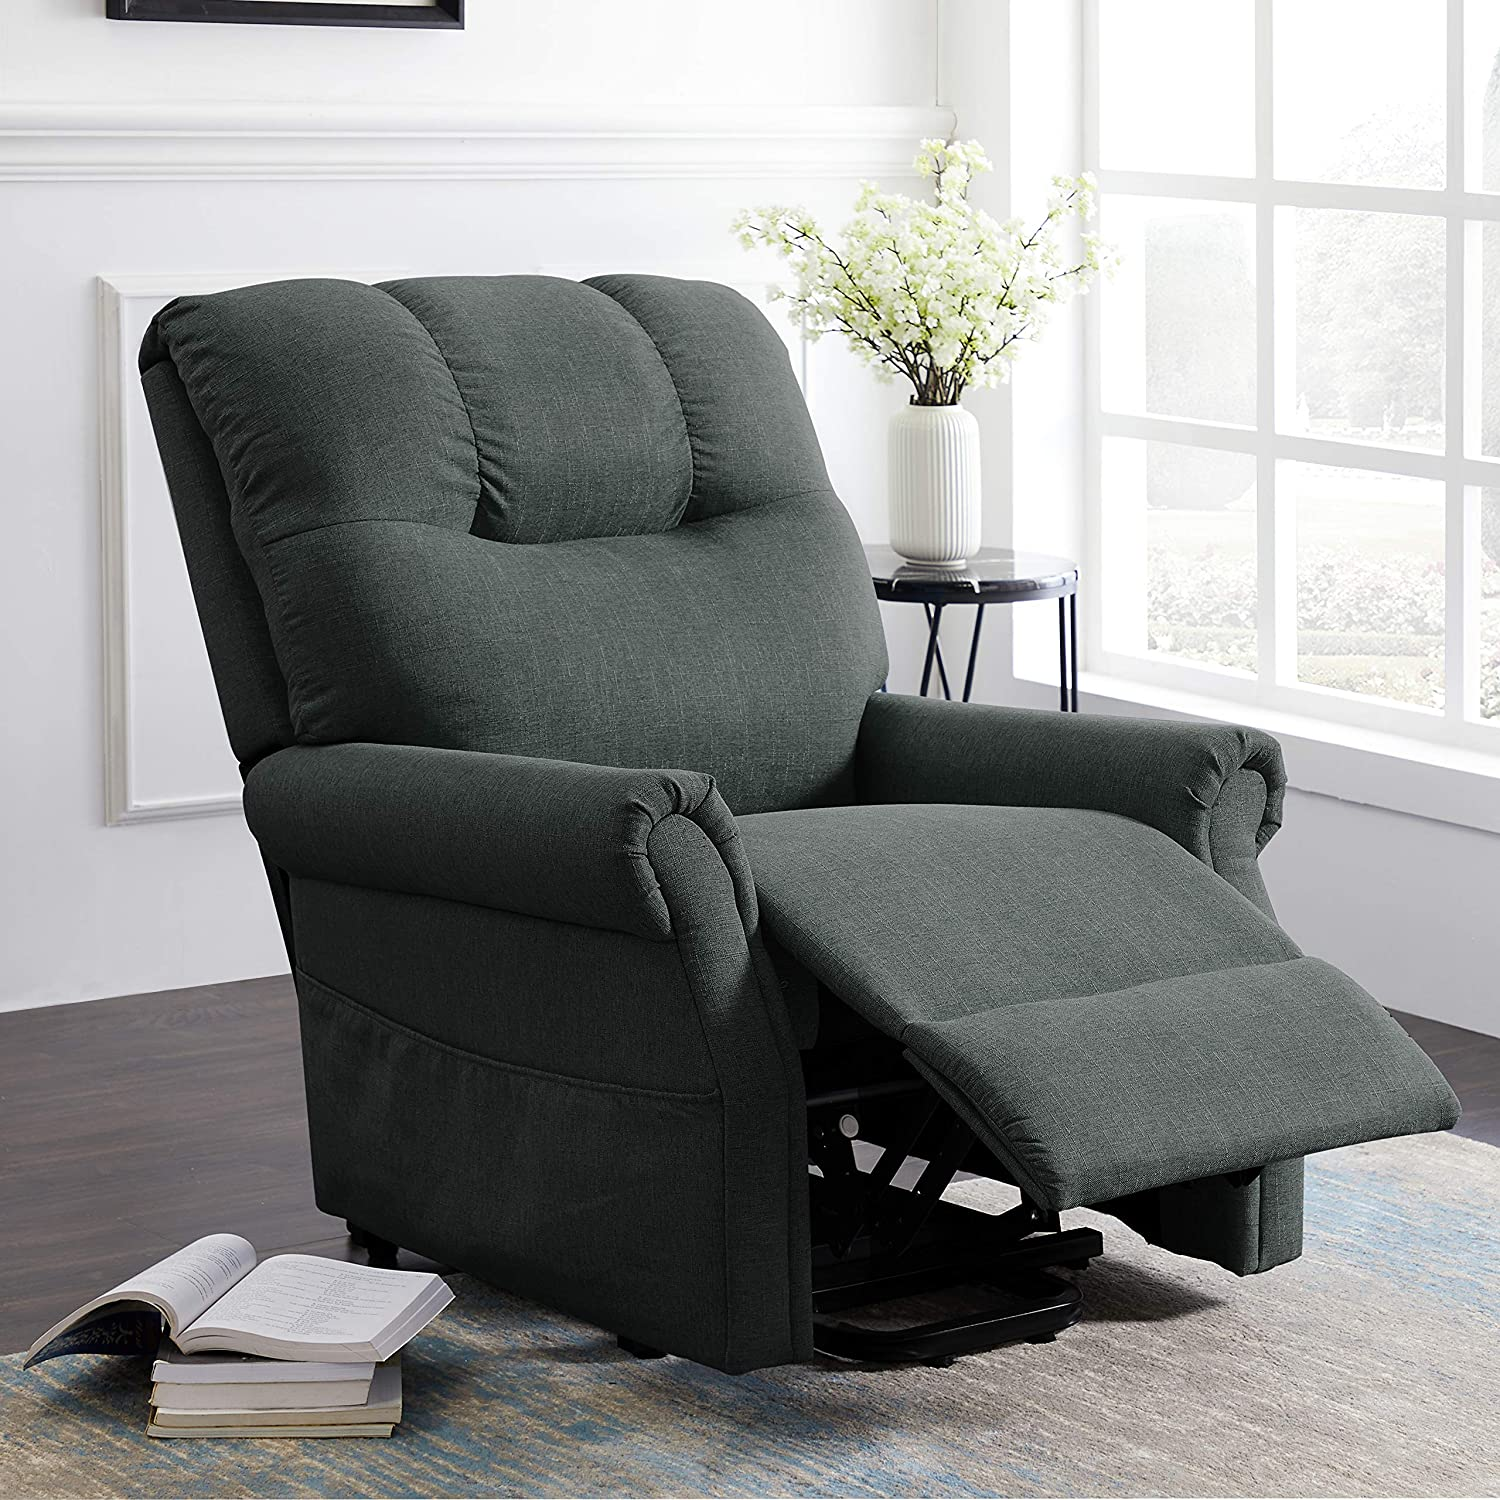 Electric Power Lift Recliner Chair Sofa with Massage and Heat for Elderly, Premium Thickened Fabric Recliner Chair with Side Pockets, Green